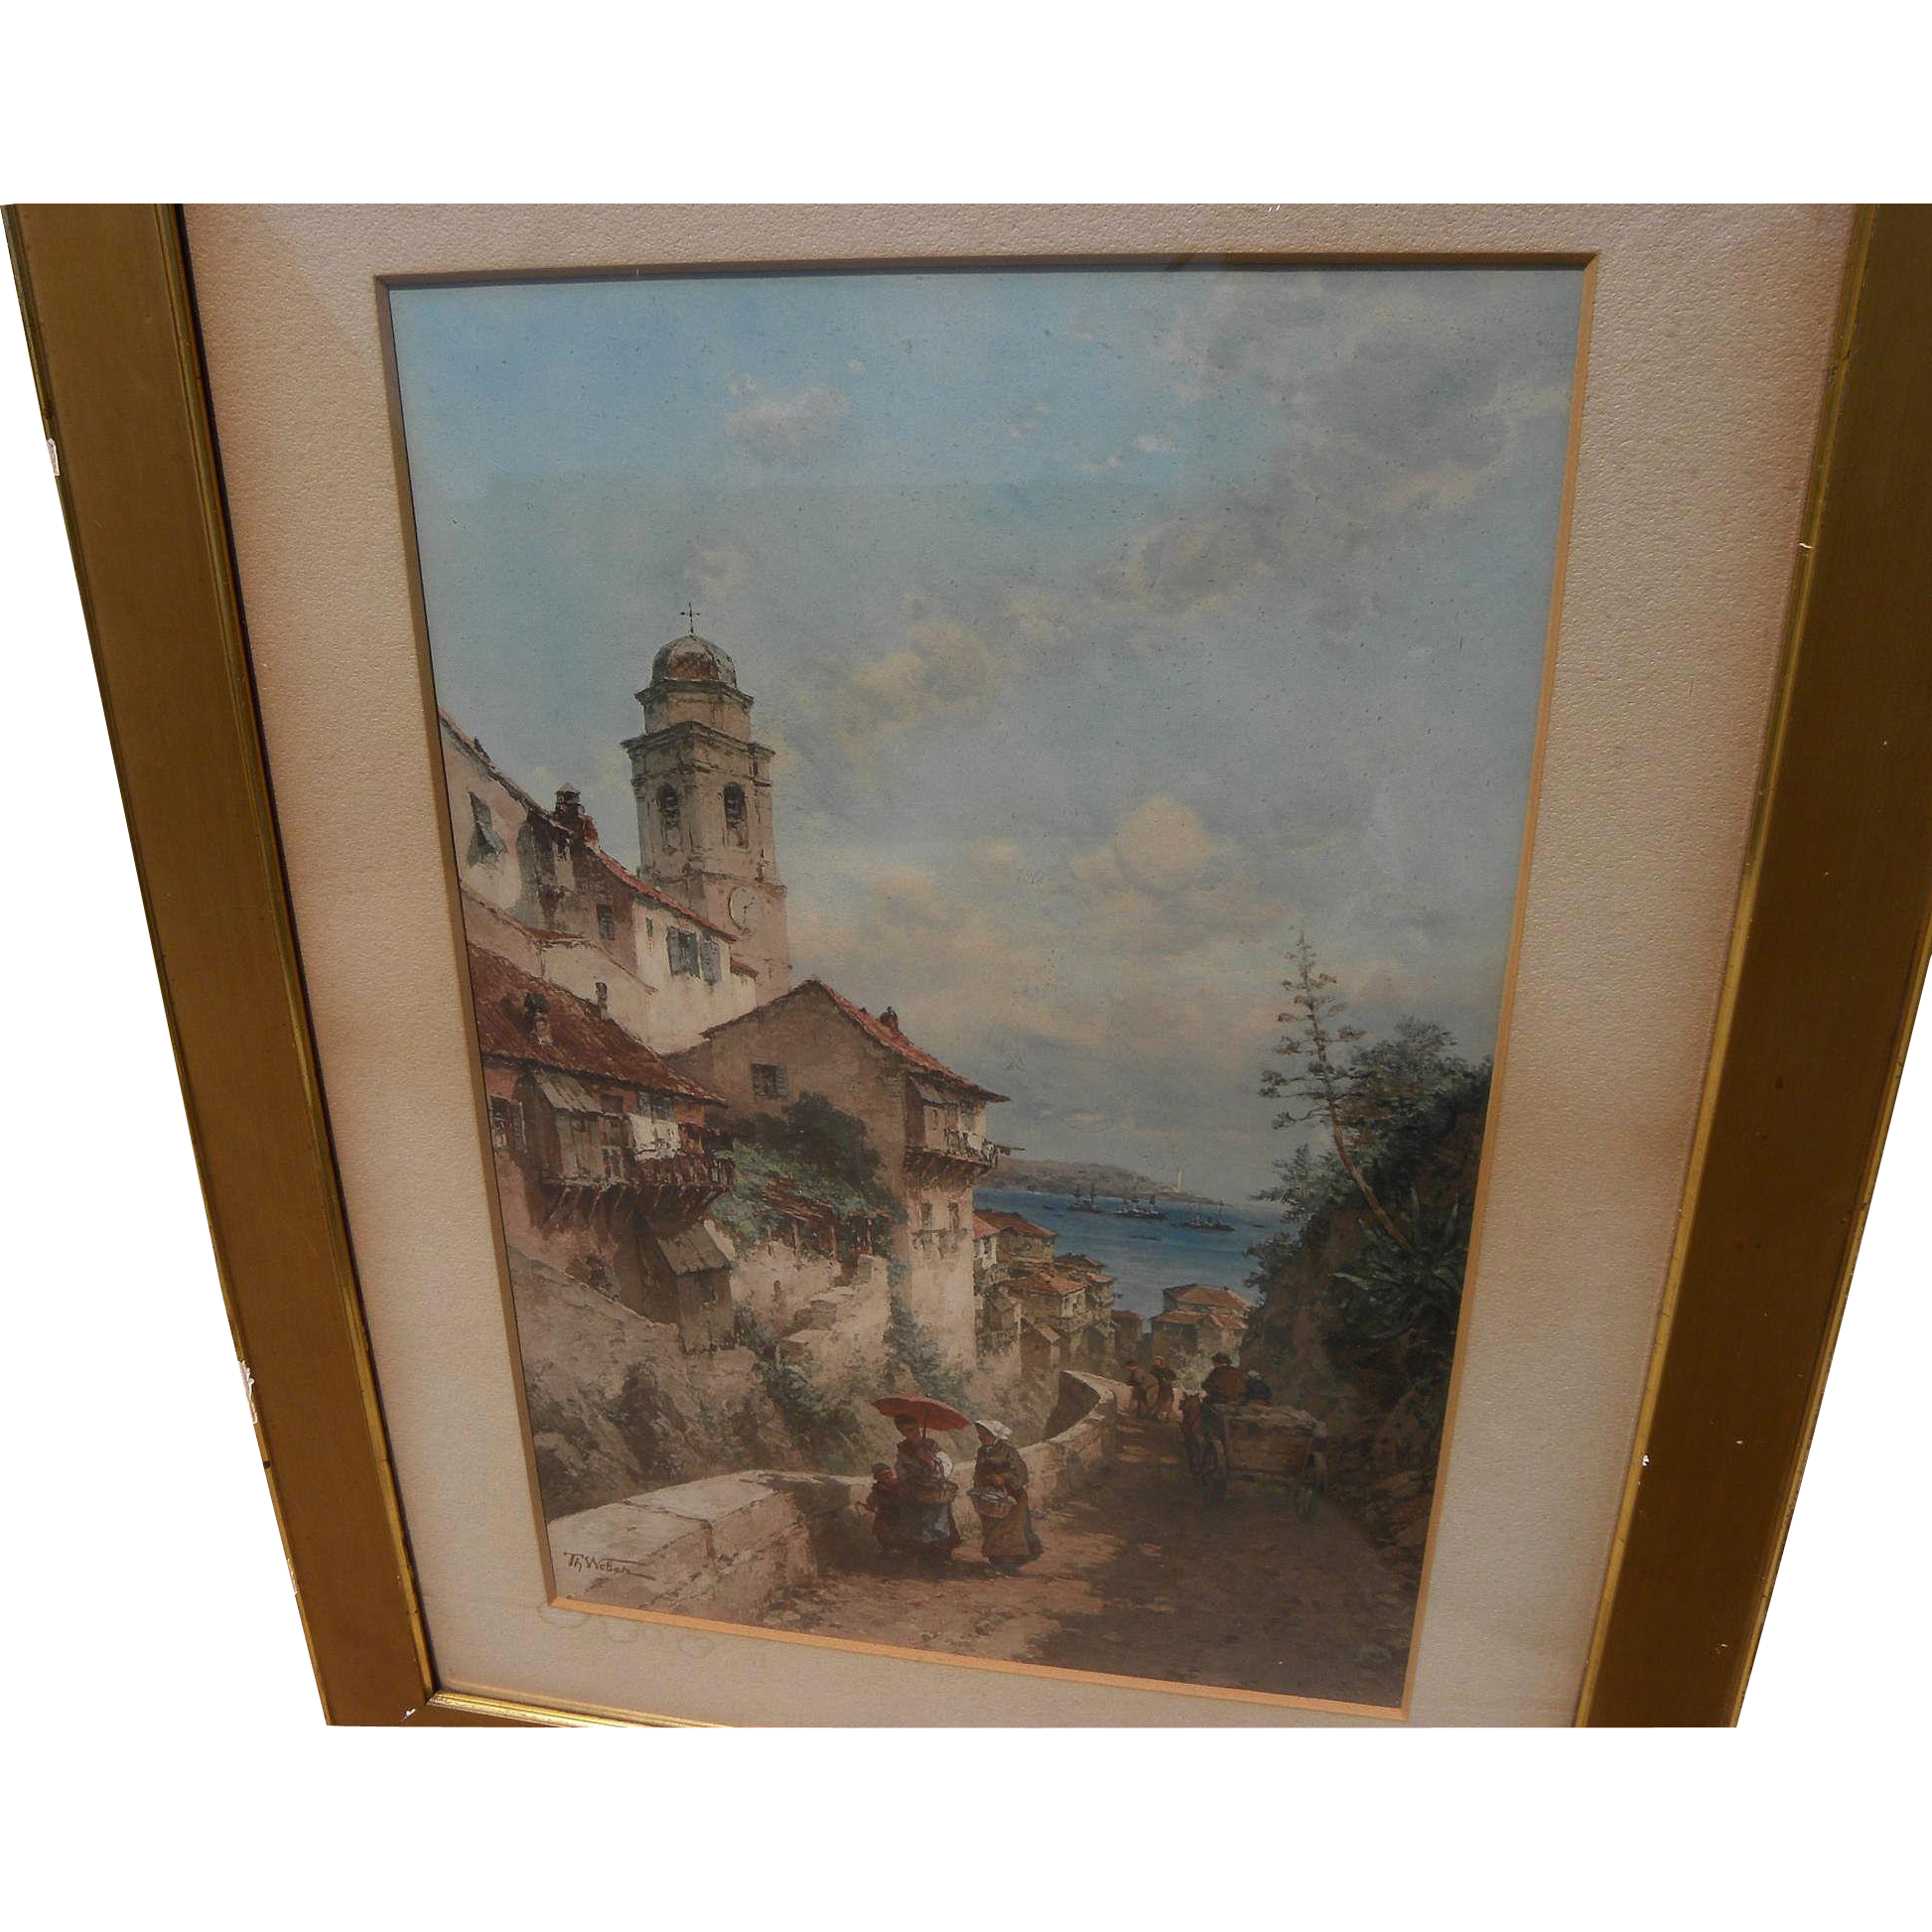 THEODORE WEBER (1838-1907) chromolithograph print after an Italian coastal scene painting